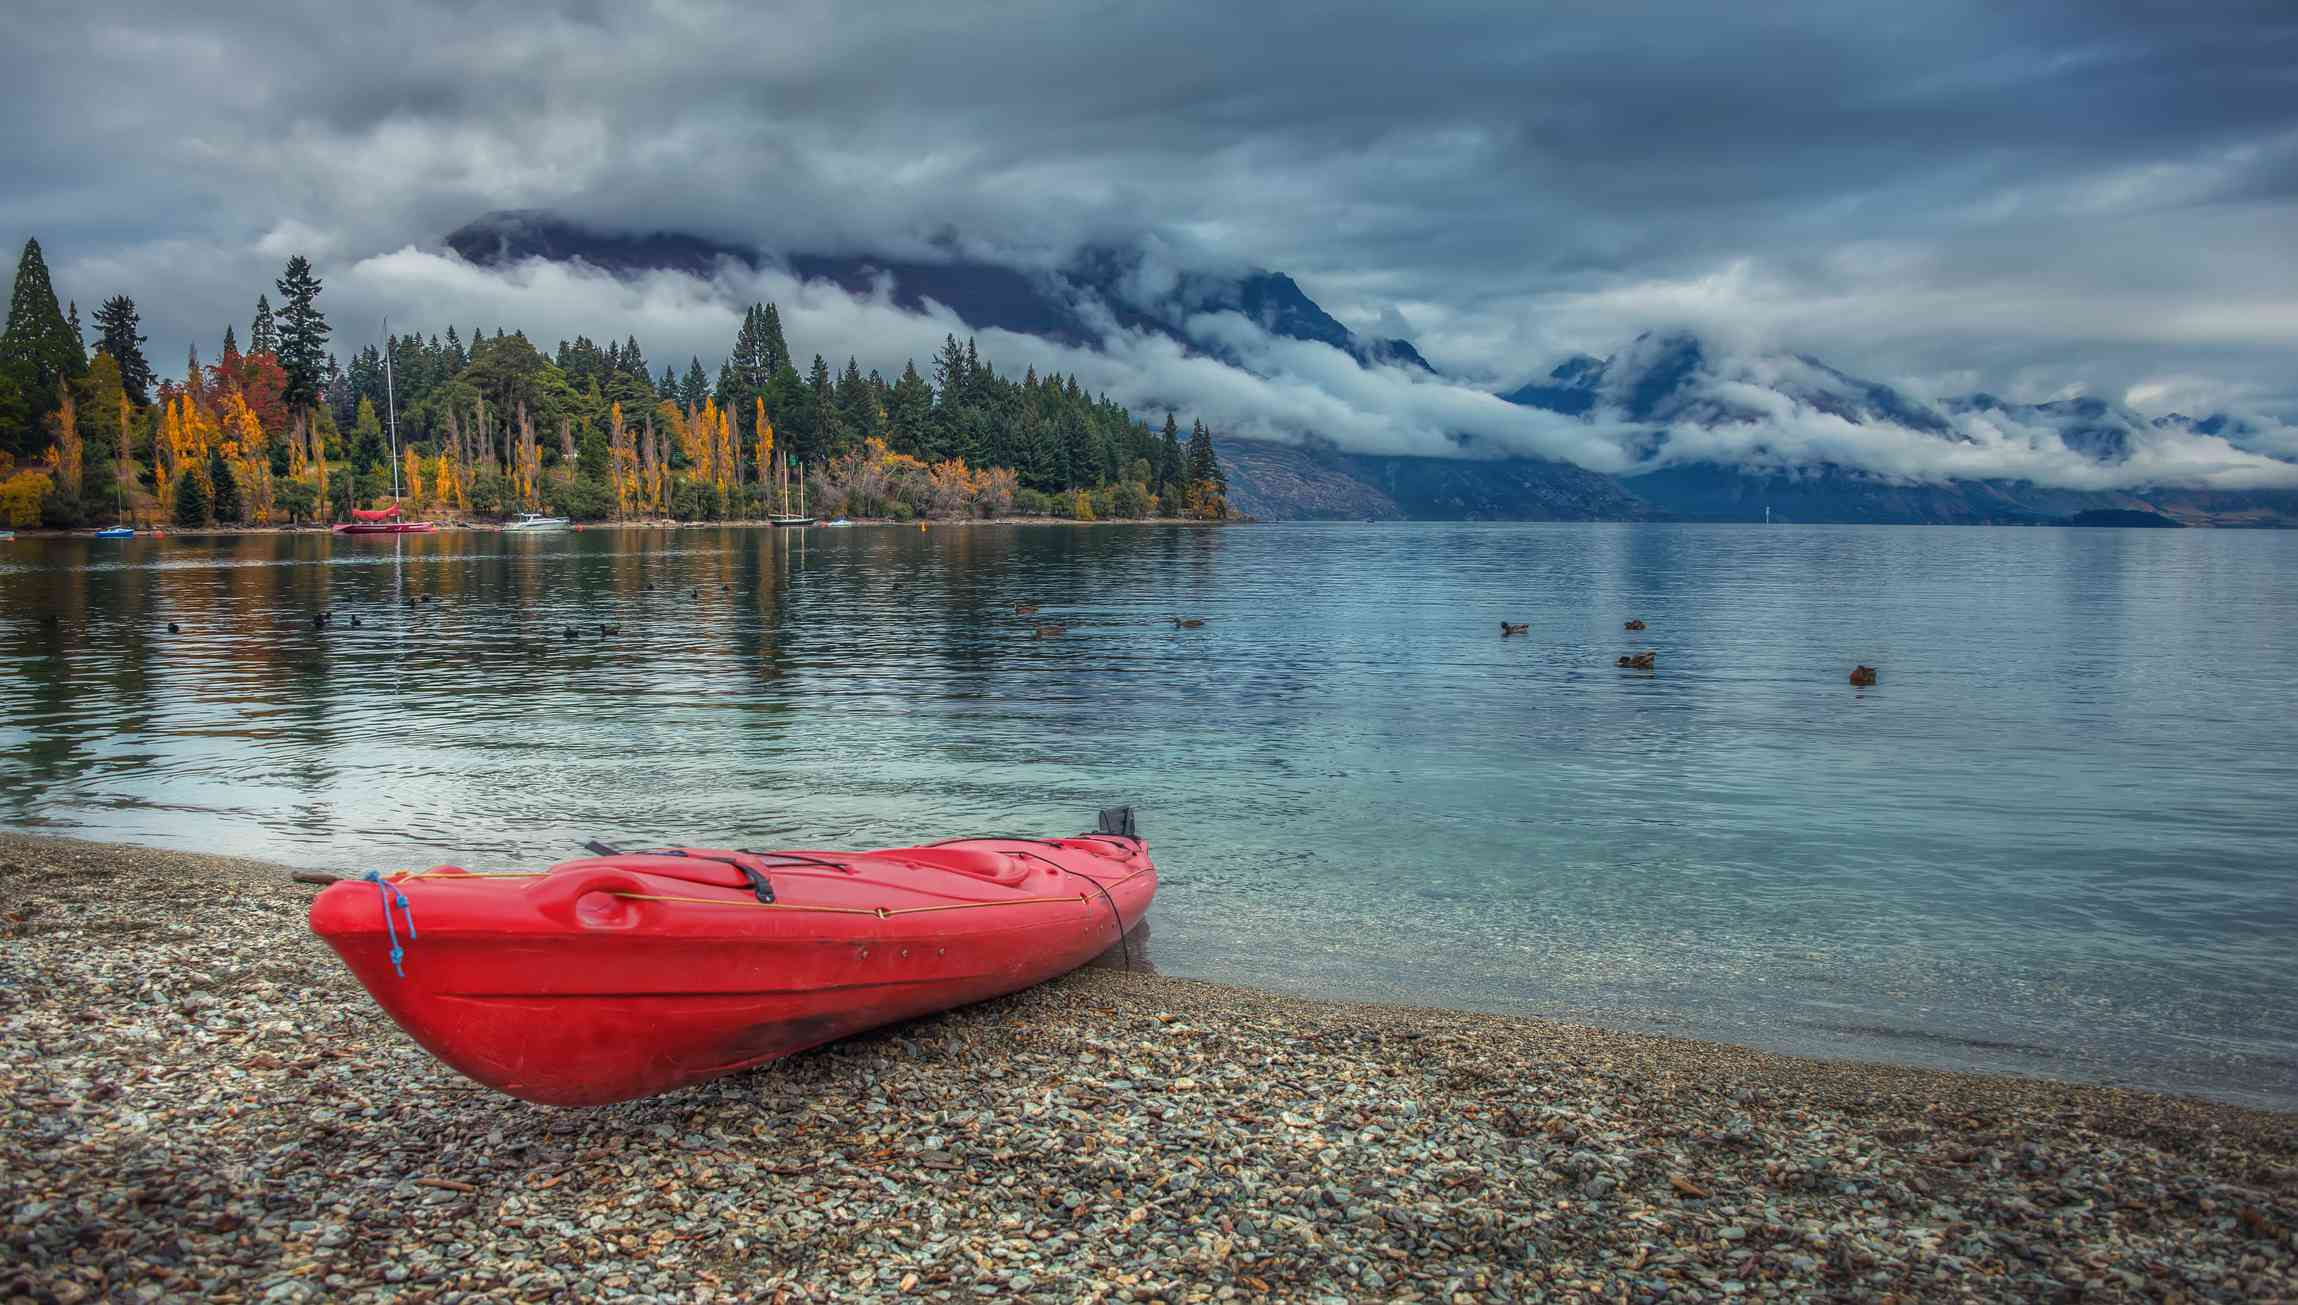 red kayak on stony beach beside calm blue lake with trees, clouds and mountains in background